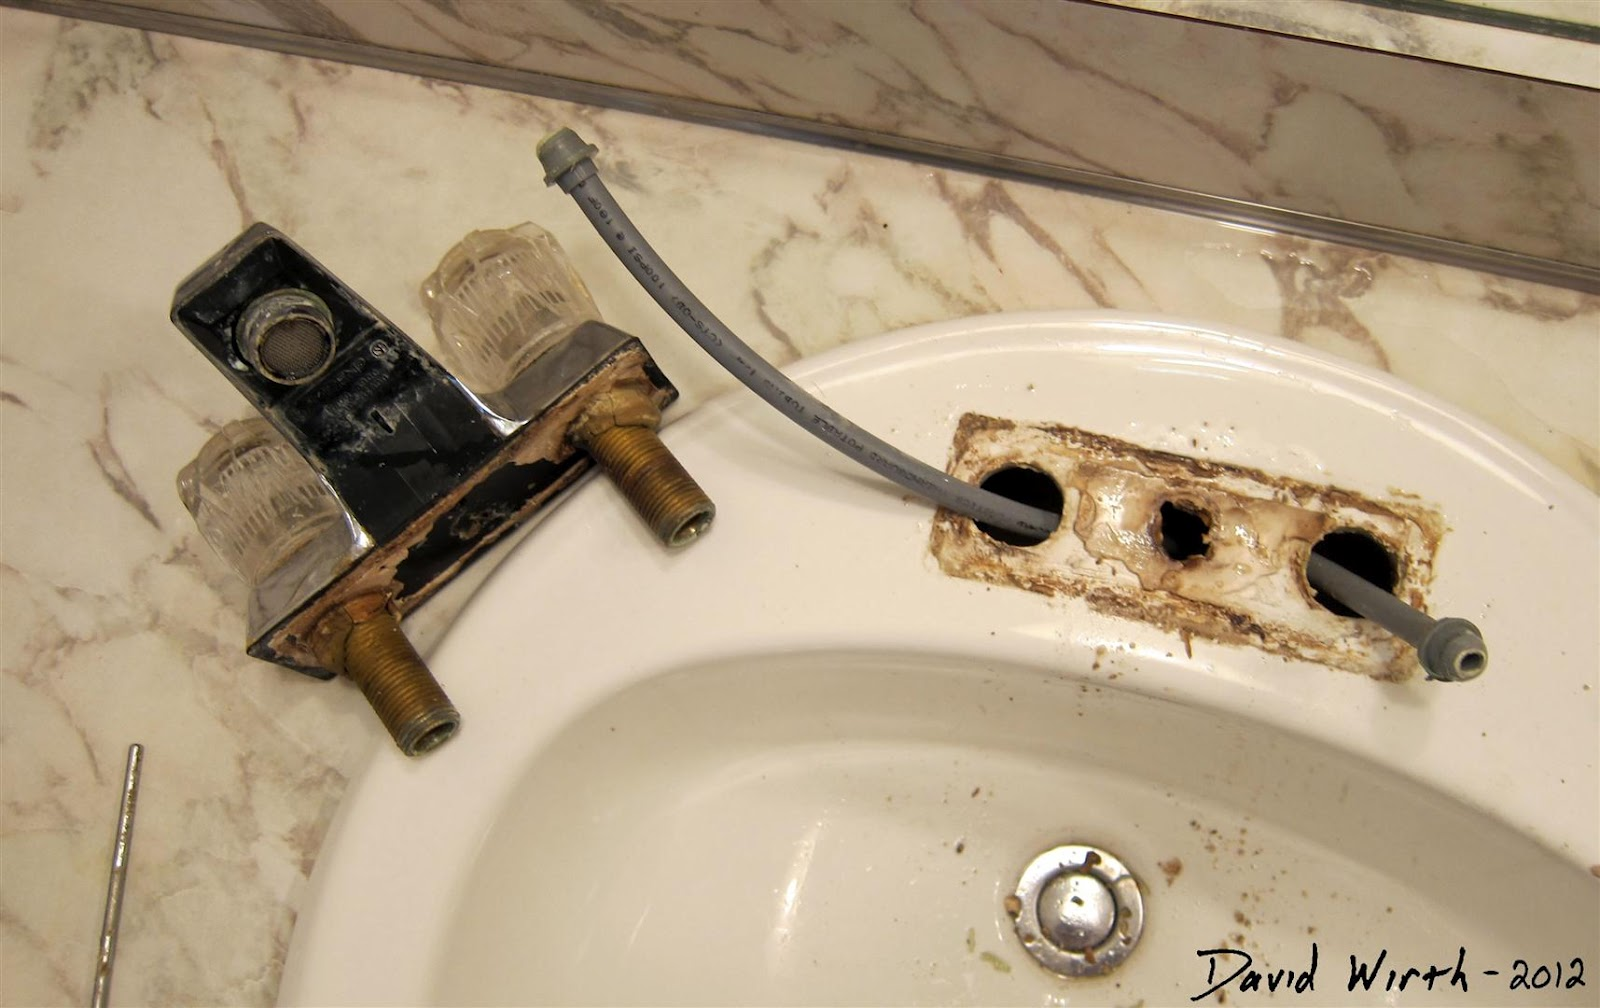 lay tile how to install a bathroom sink faucet the old